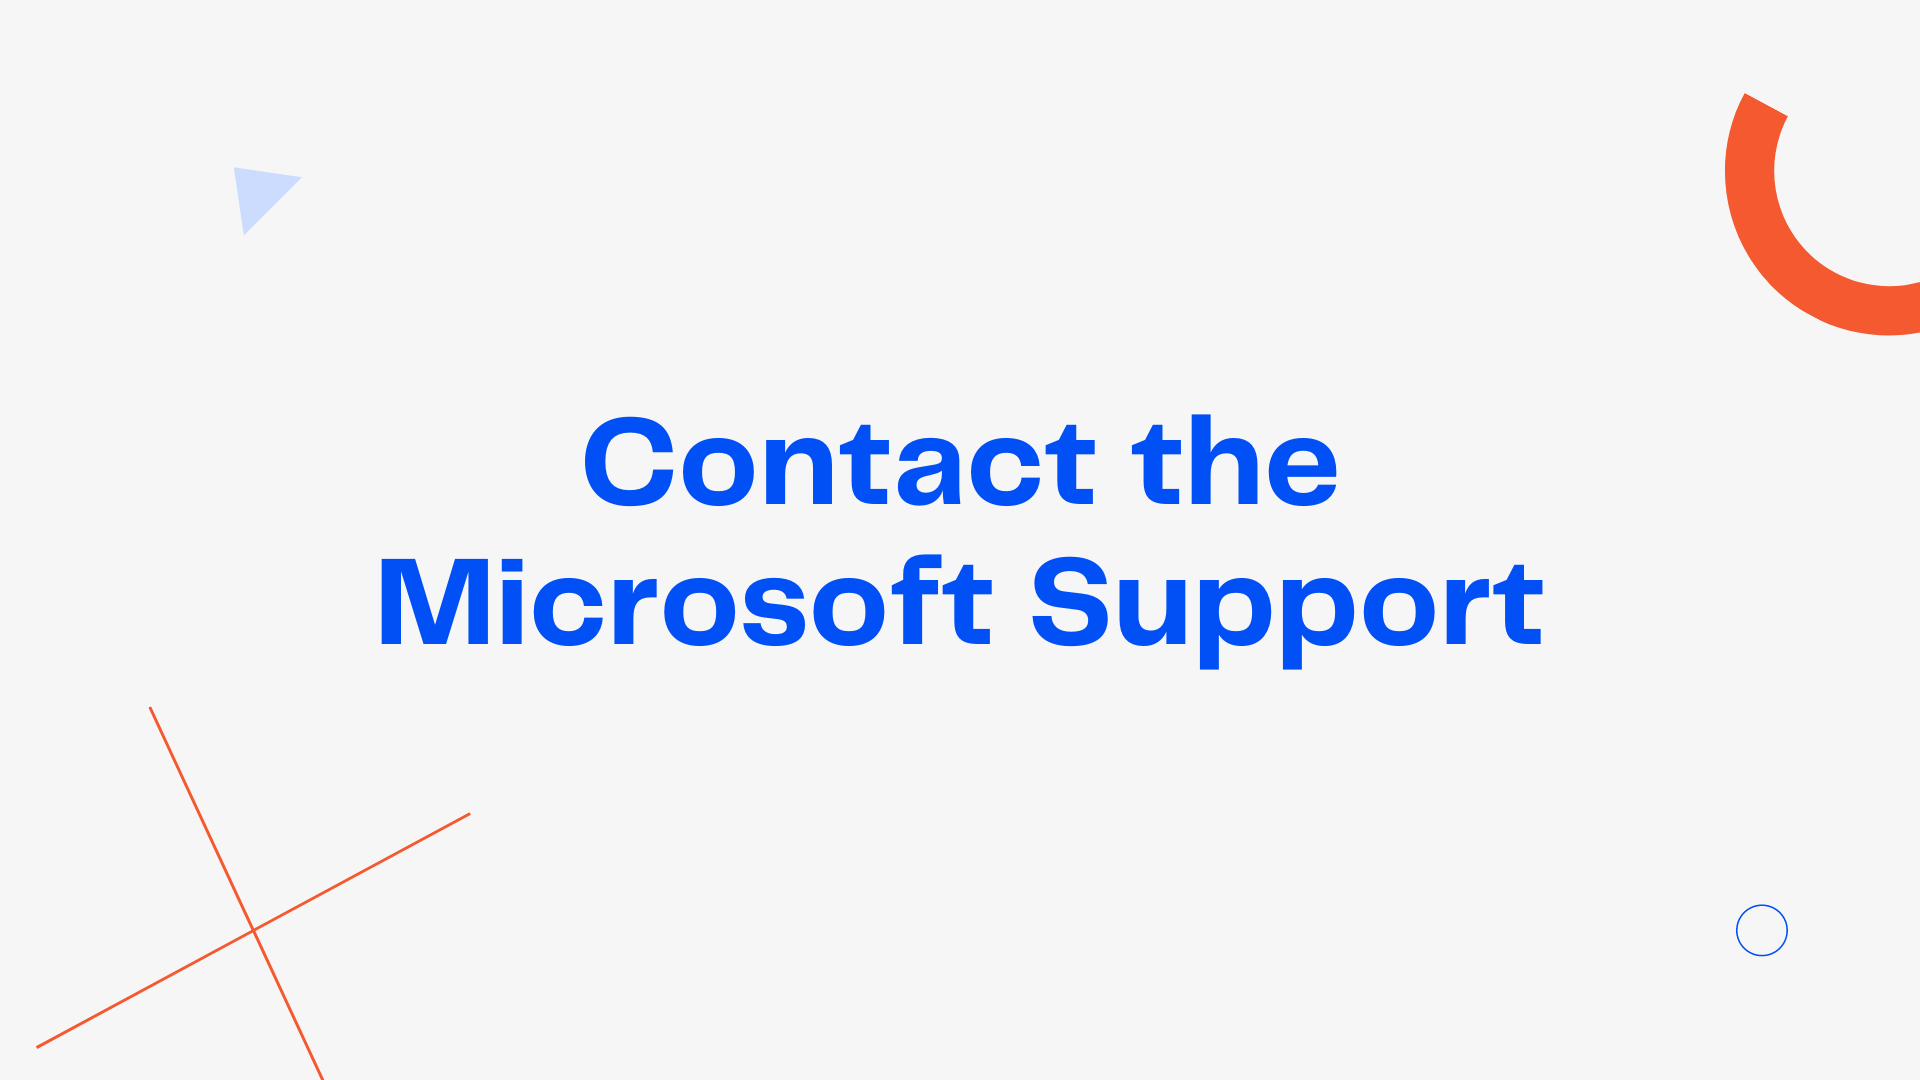 Contact the Microsoft Support to fix [pii_email_cbd448bbd34c985e423c]